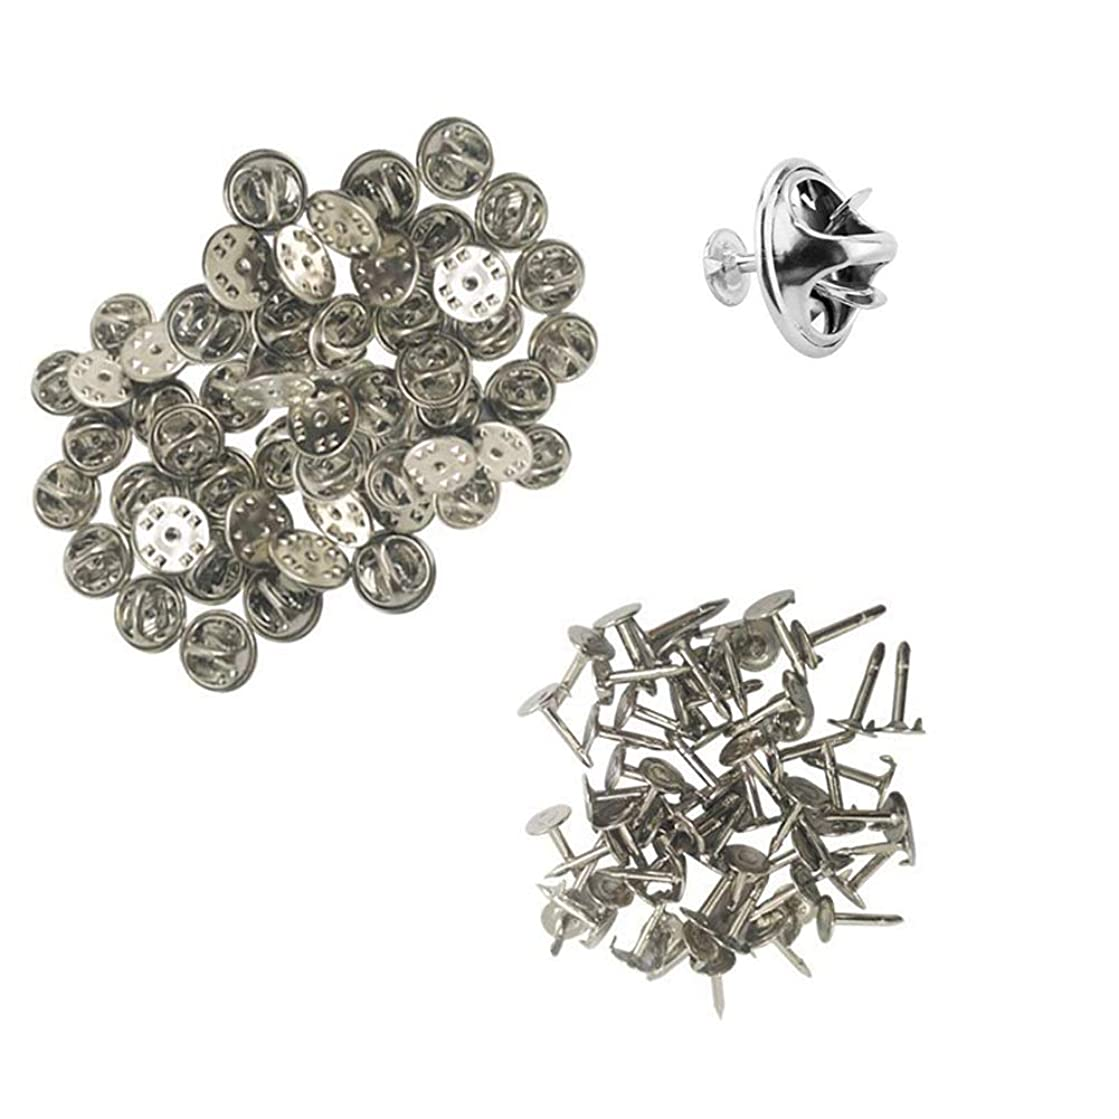 100 Pieces Metal Butterfly Clutch Uniform Pin Badge Insignia Clutches Pin Backs Replacement Butterfly Tie Tacks Pin Back Replacement with Blank Pins for Craft Jewelry Making Silver Color